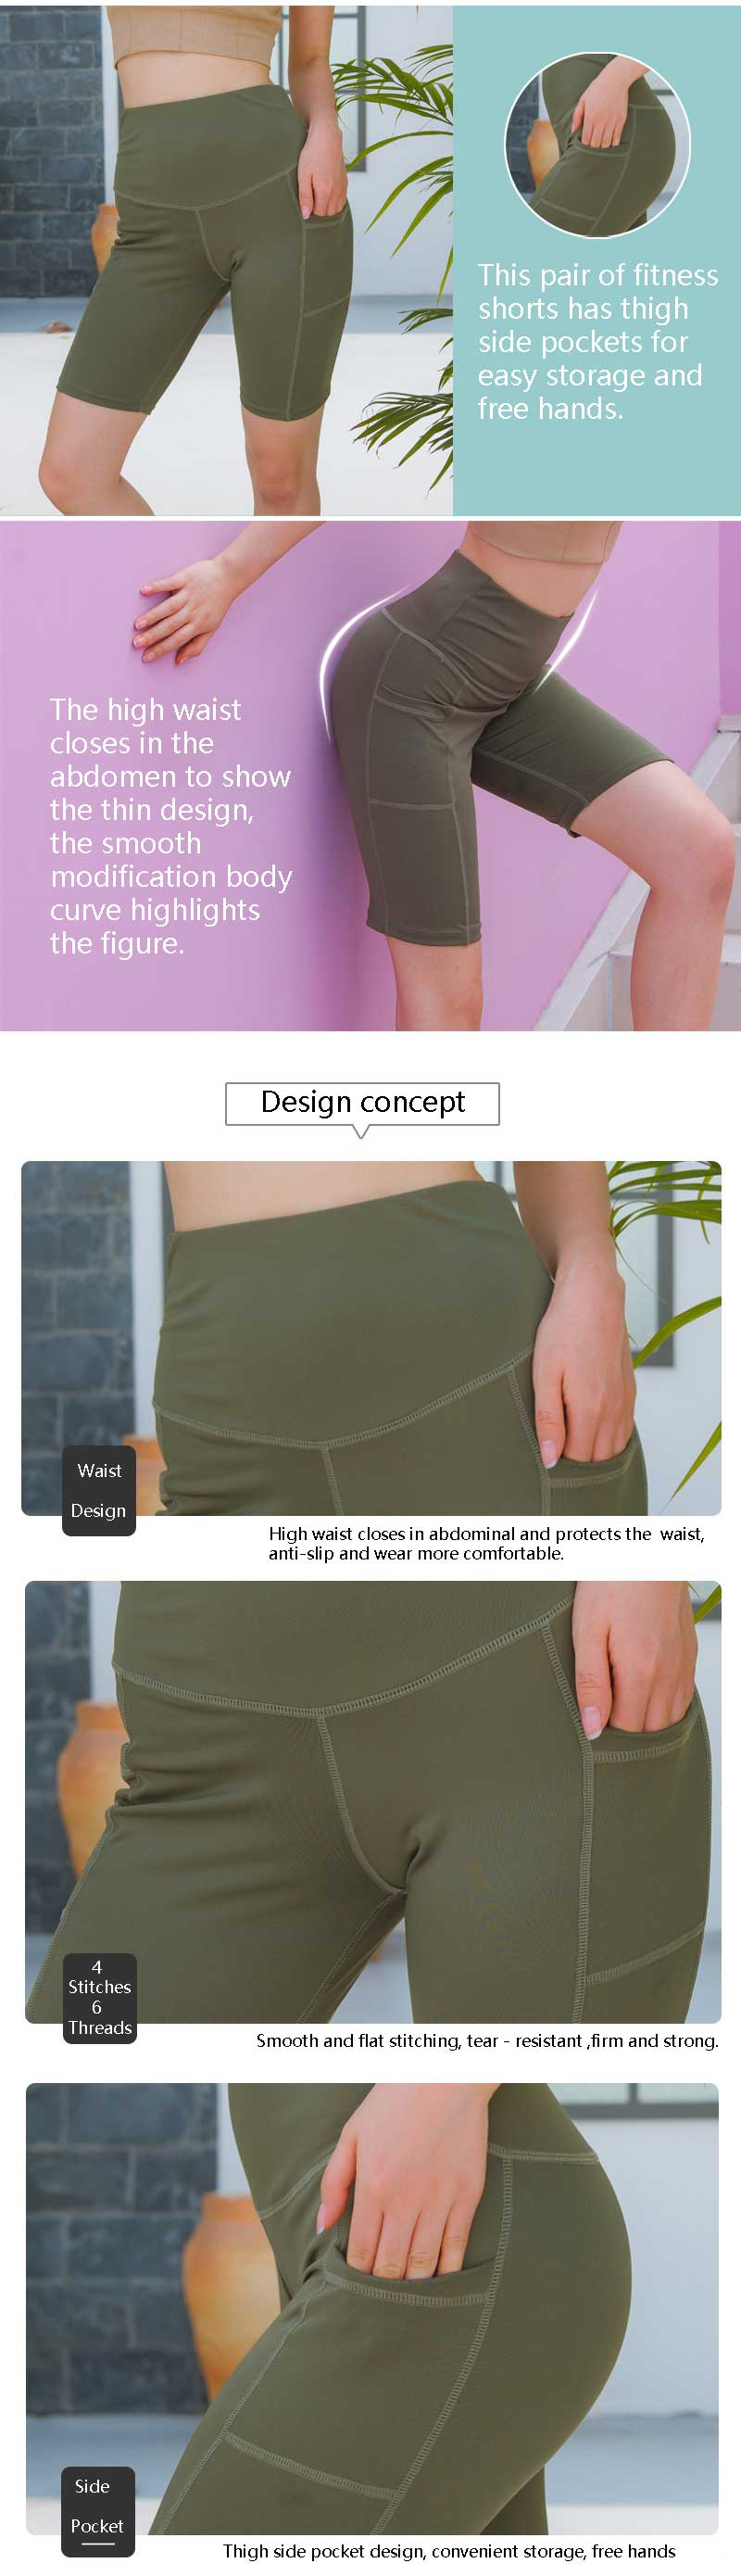 Running shorts with phone pocket design concepts